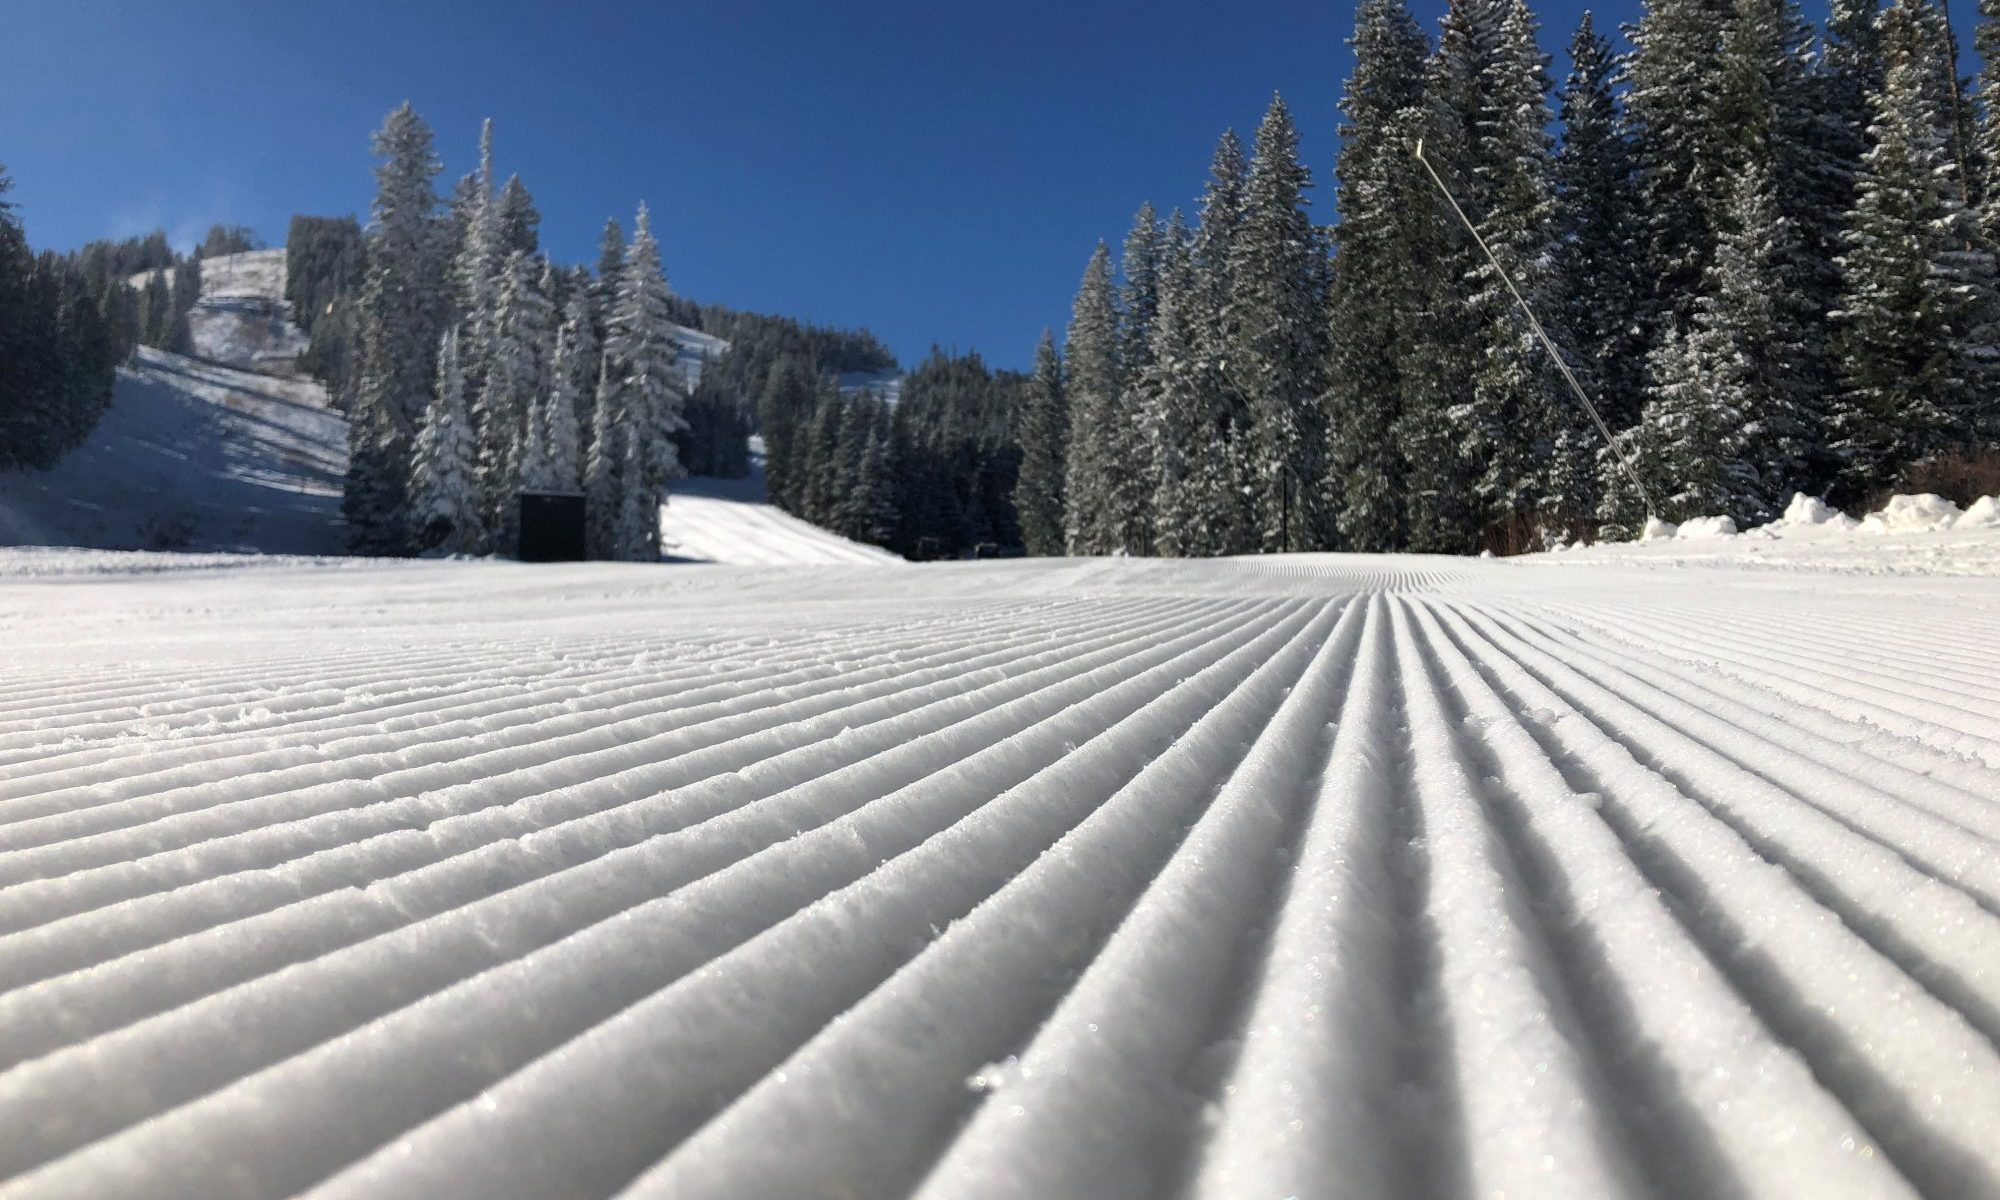 Eldora-Sam Bass. Colorado Ski Country USA. Colorado Ski Country USA Announces Double Digit Increase in Skier Visits in 2018-19 Season.